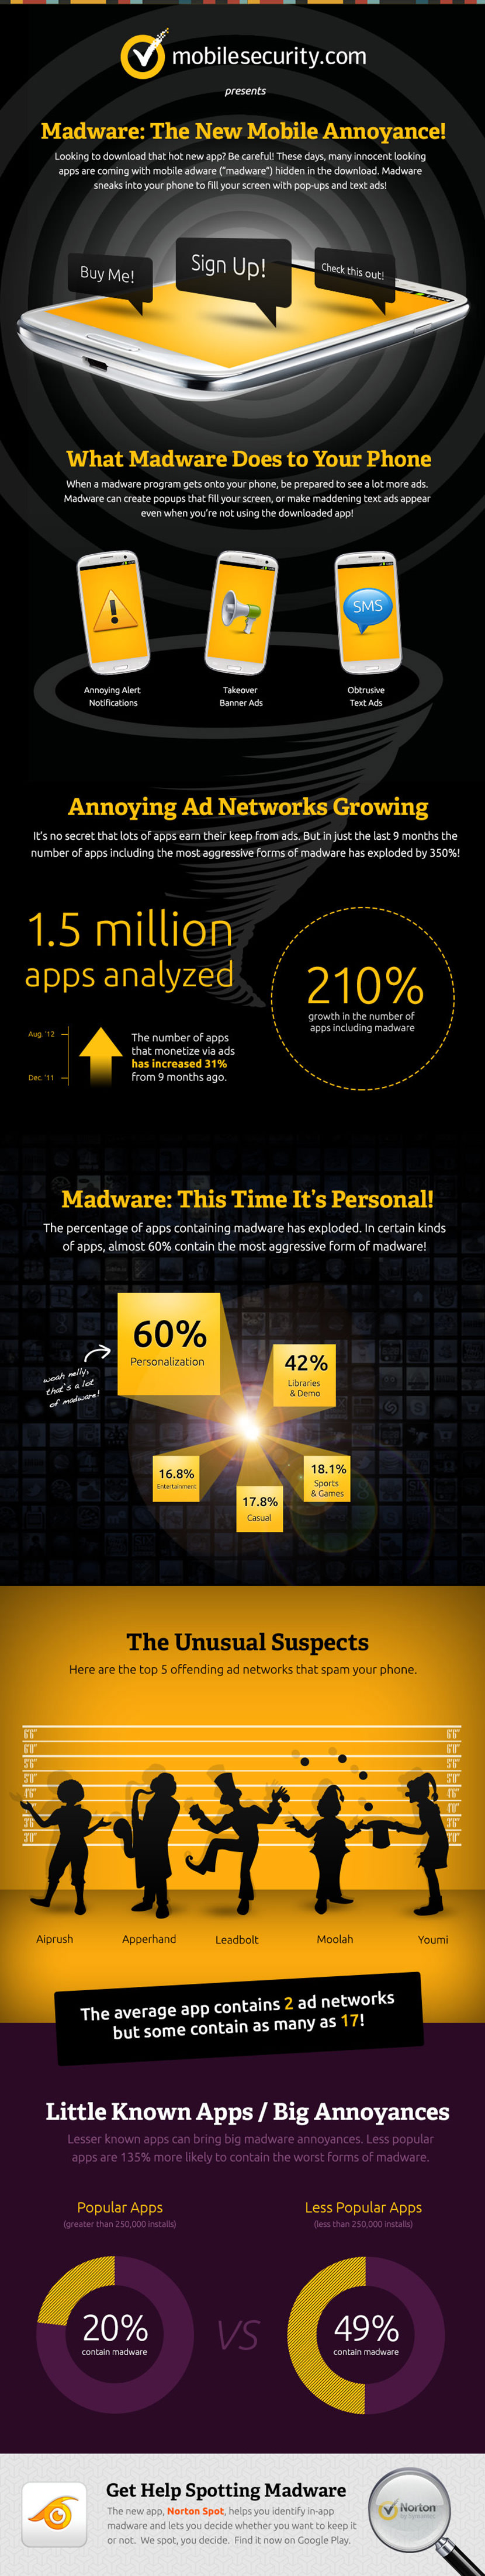 norton spot madware Infographic Do I Need Antivirus for my Android Smartphone? Norton Security 2017 Review - Download Free 30 Days Trial